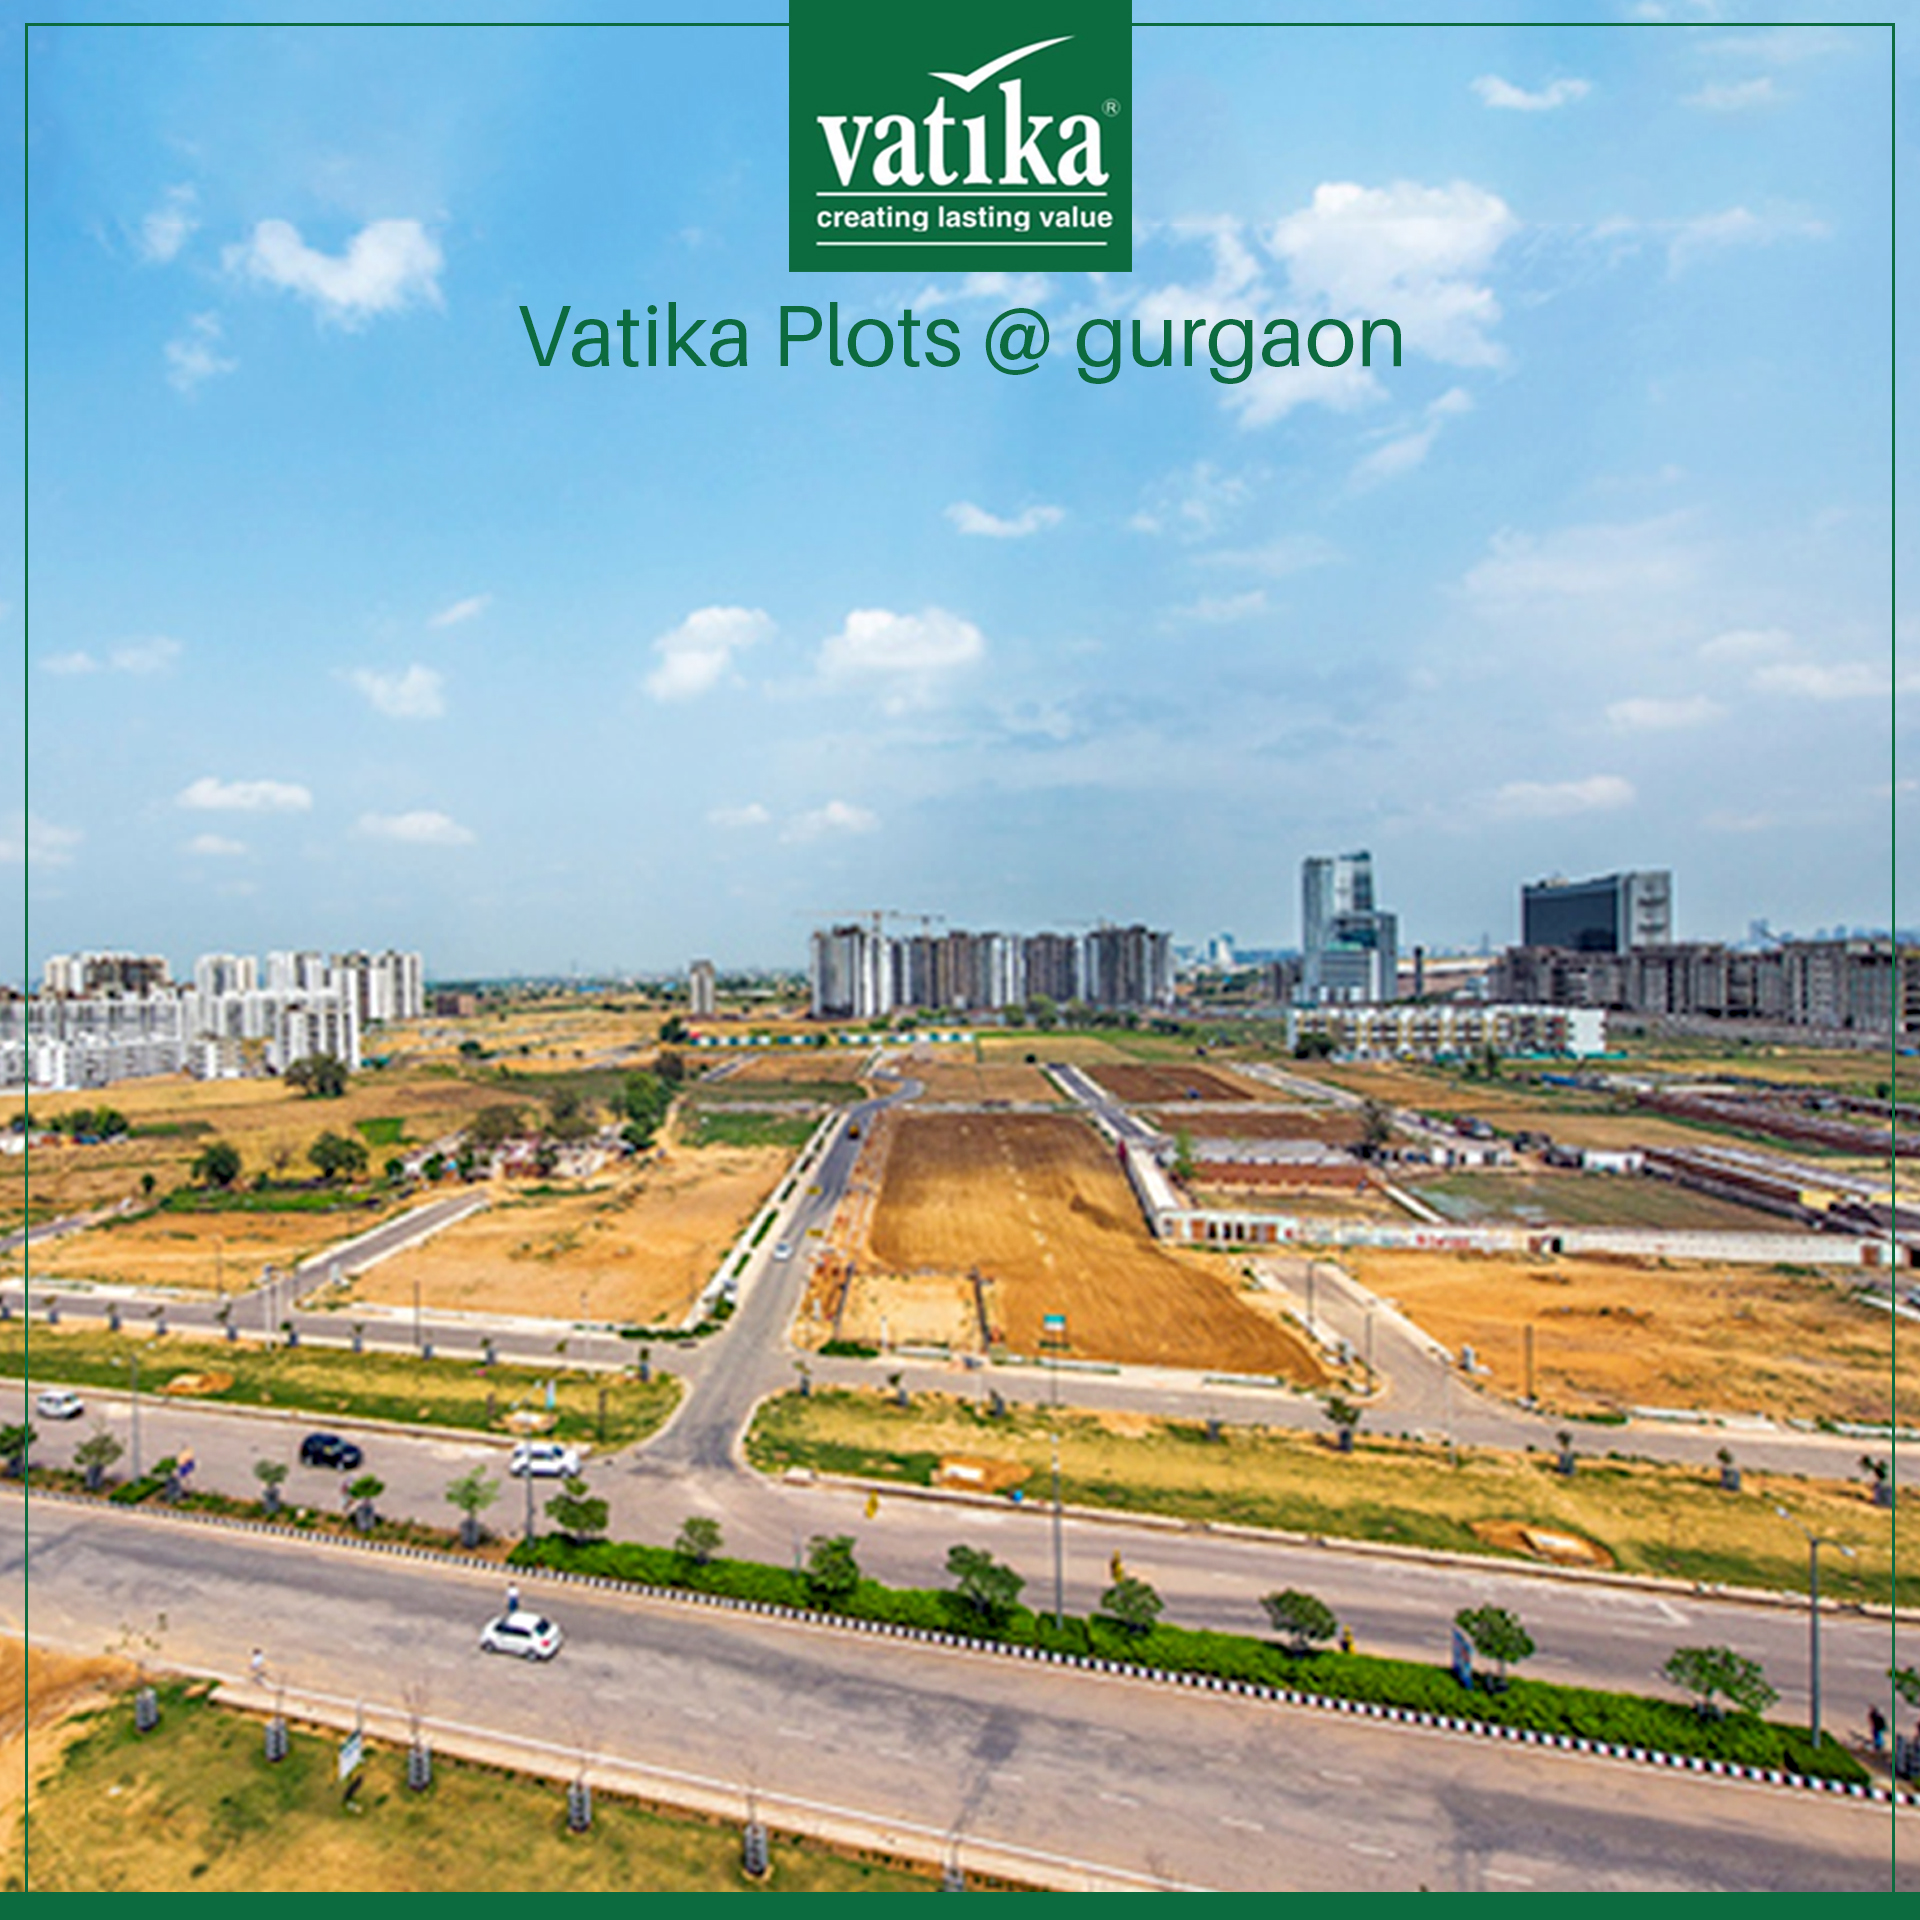 Vatika Plots in Gurgaon